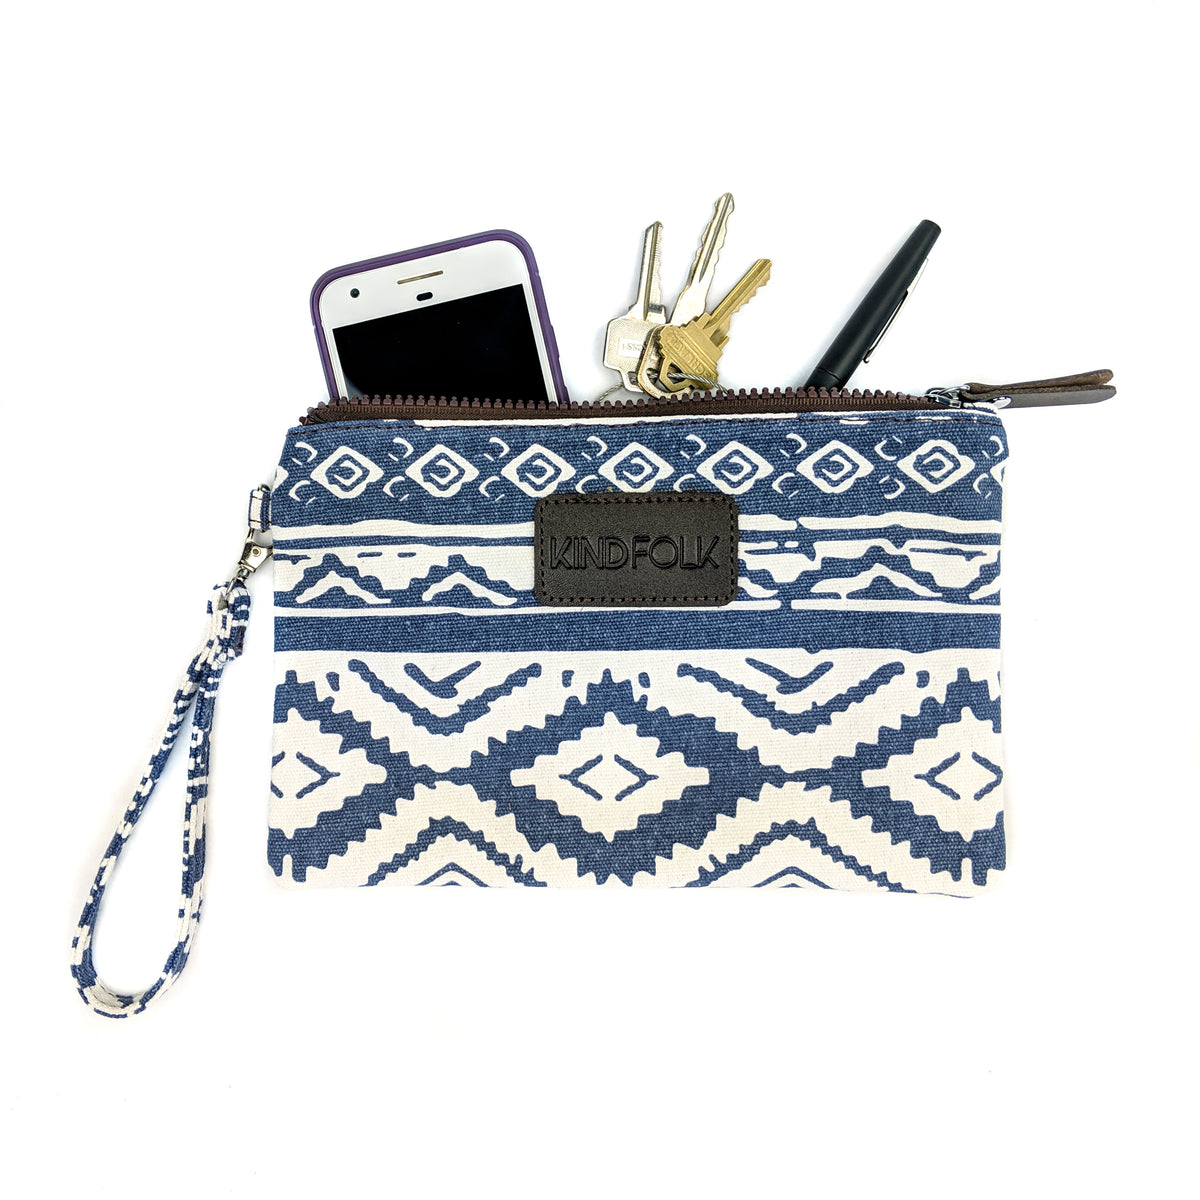 Accessory Pouch Wristlet - Kindfolk Athletics